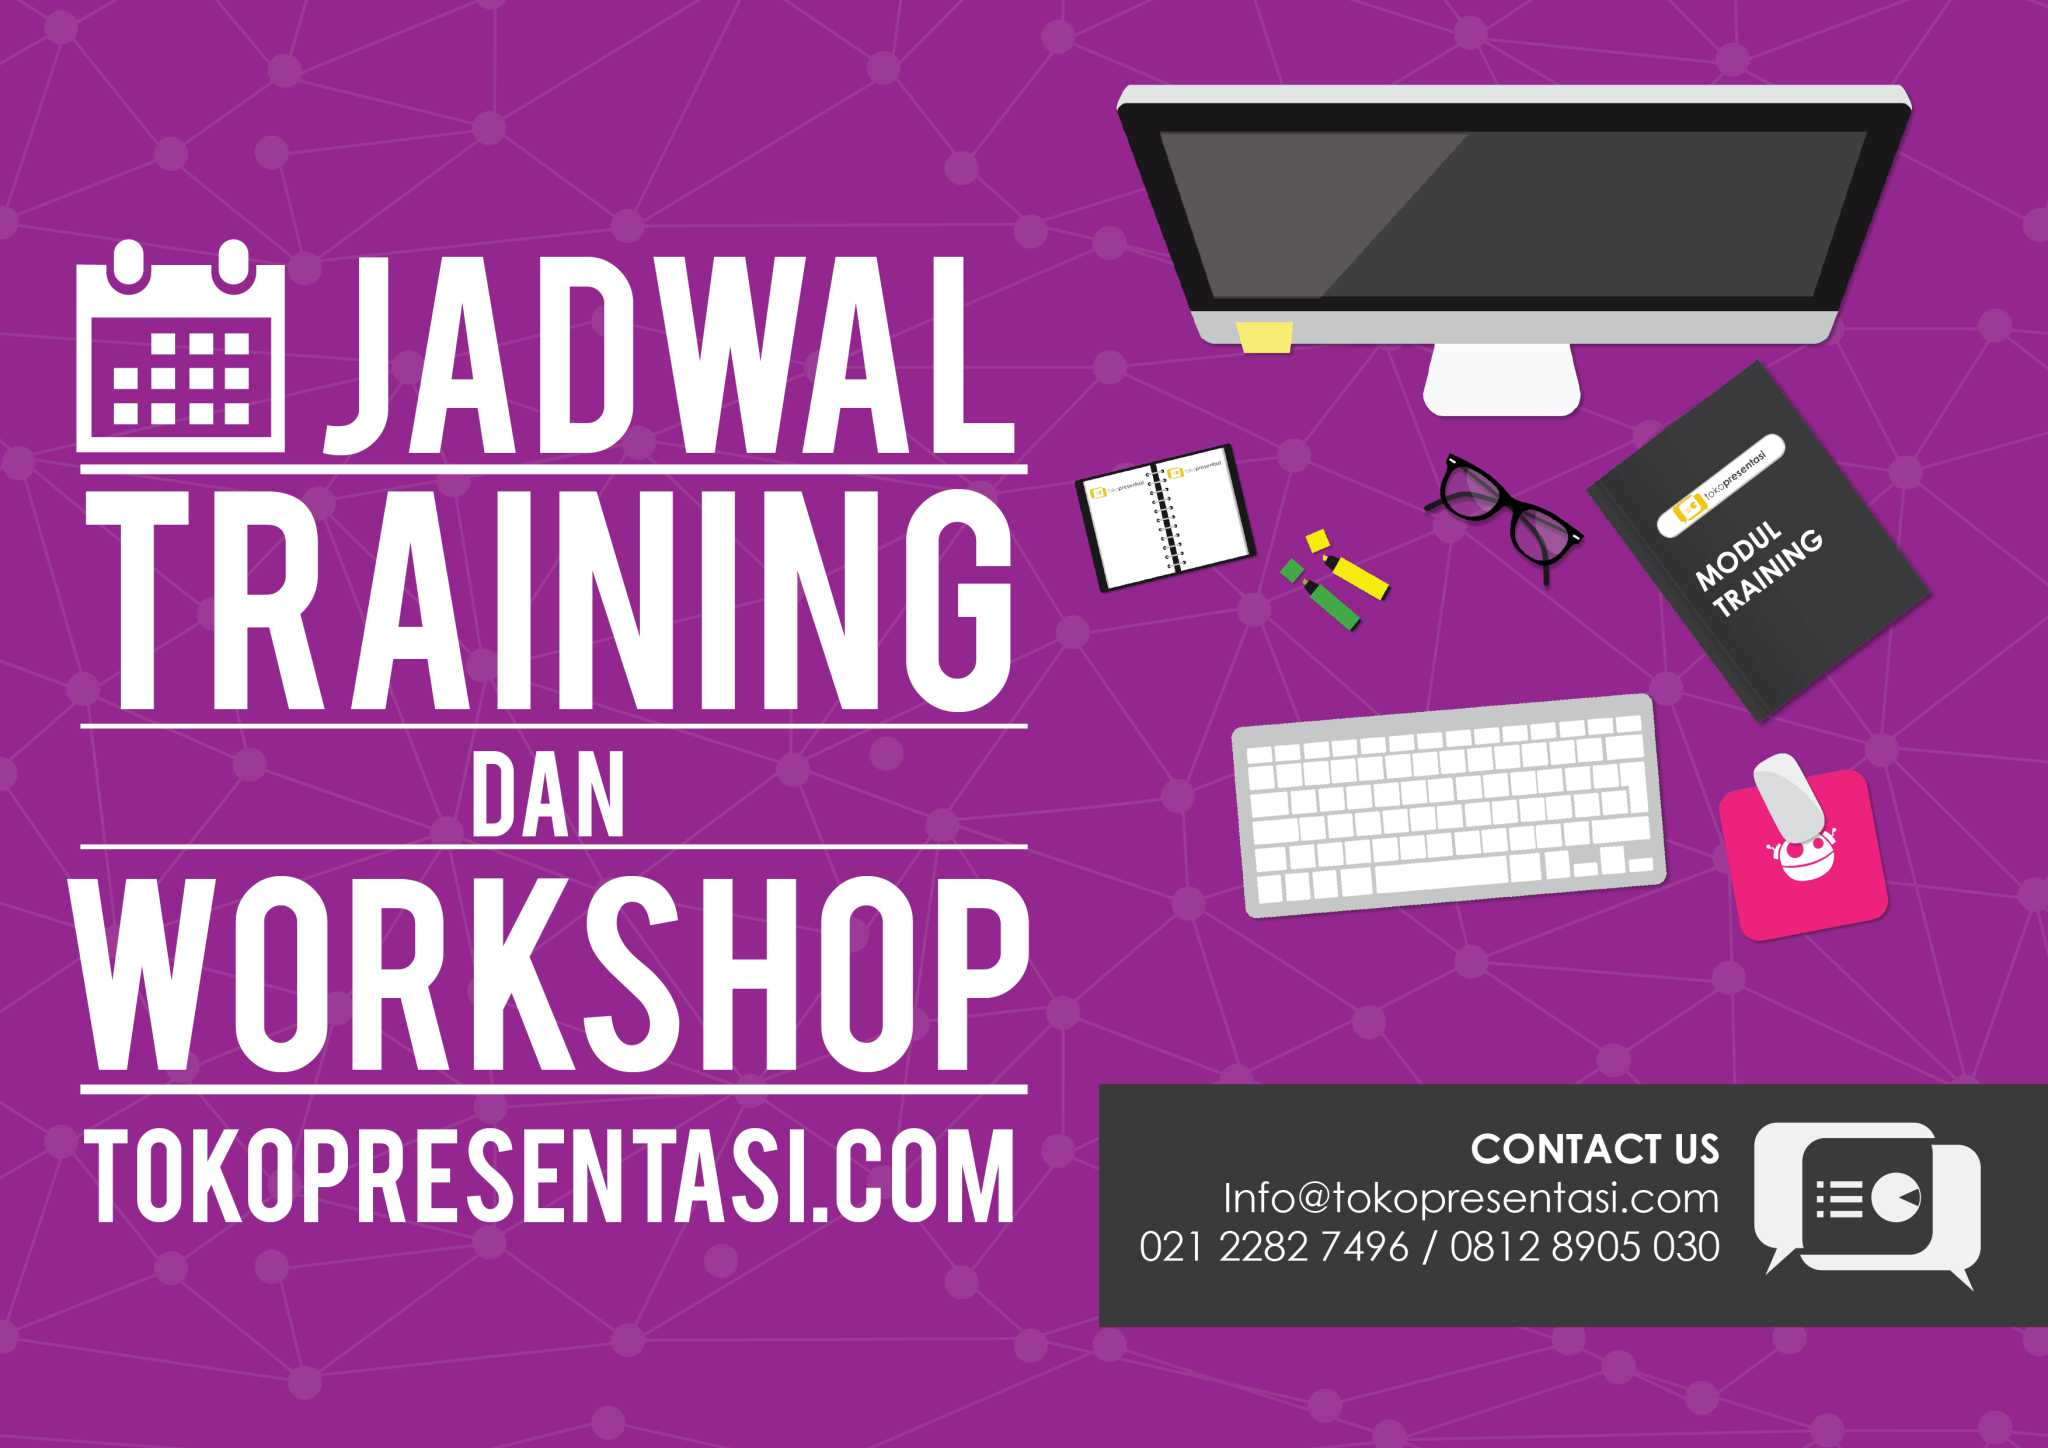 post jadwal training presentasi desain ppt desain slide presentasi powerpoint jasa desain slide ppt_compressed